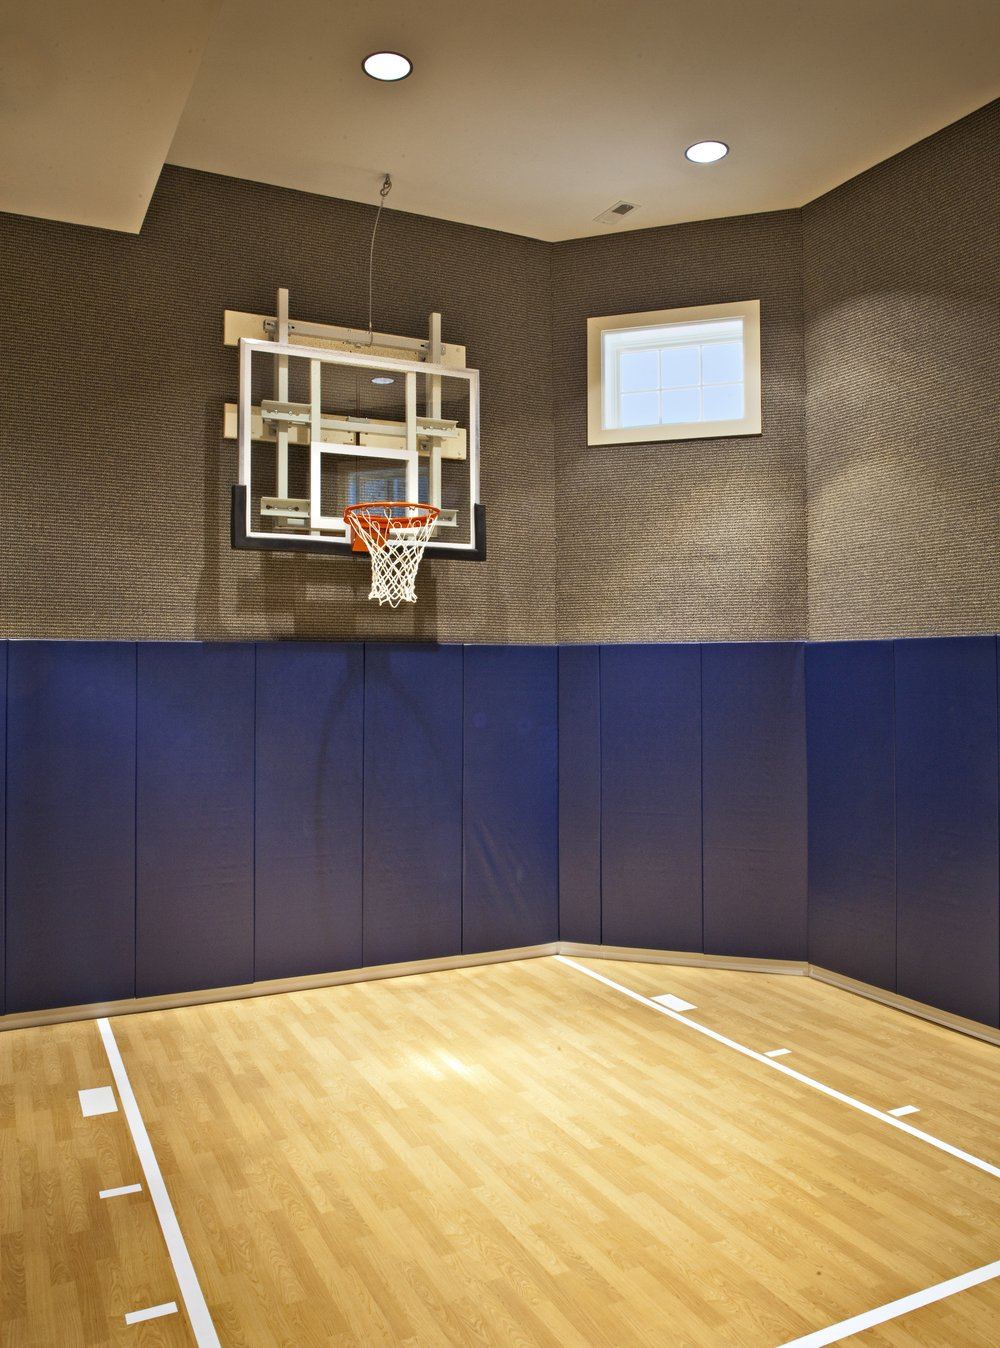 The basement southampton for Custom indoor basketball court